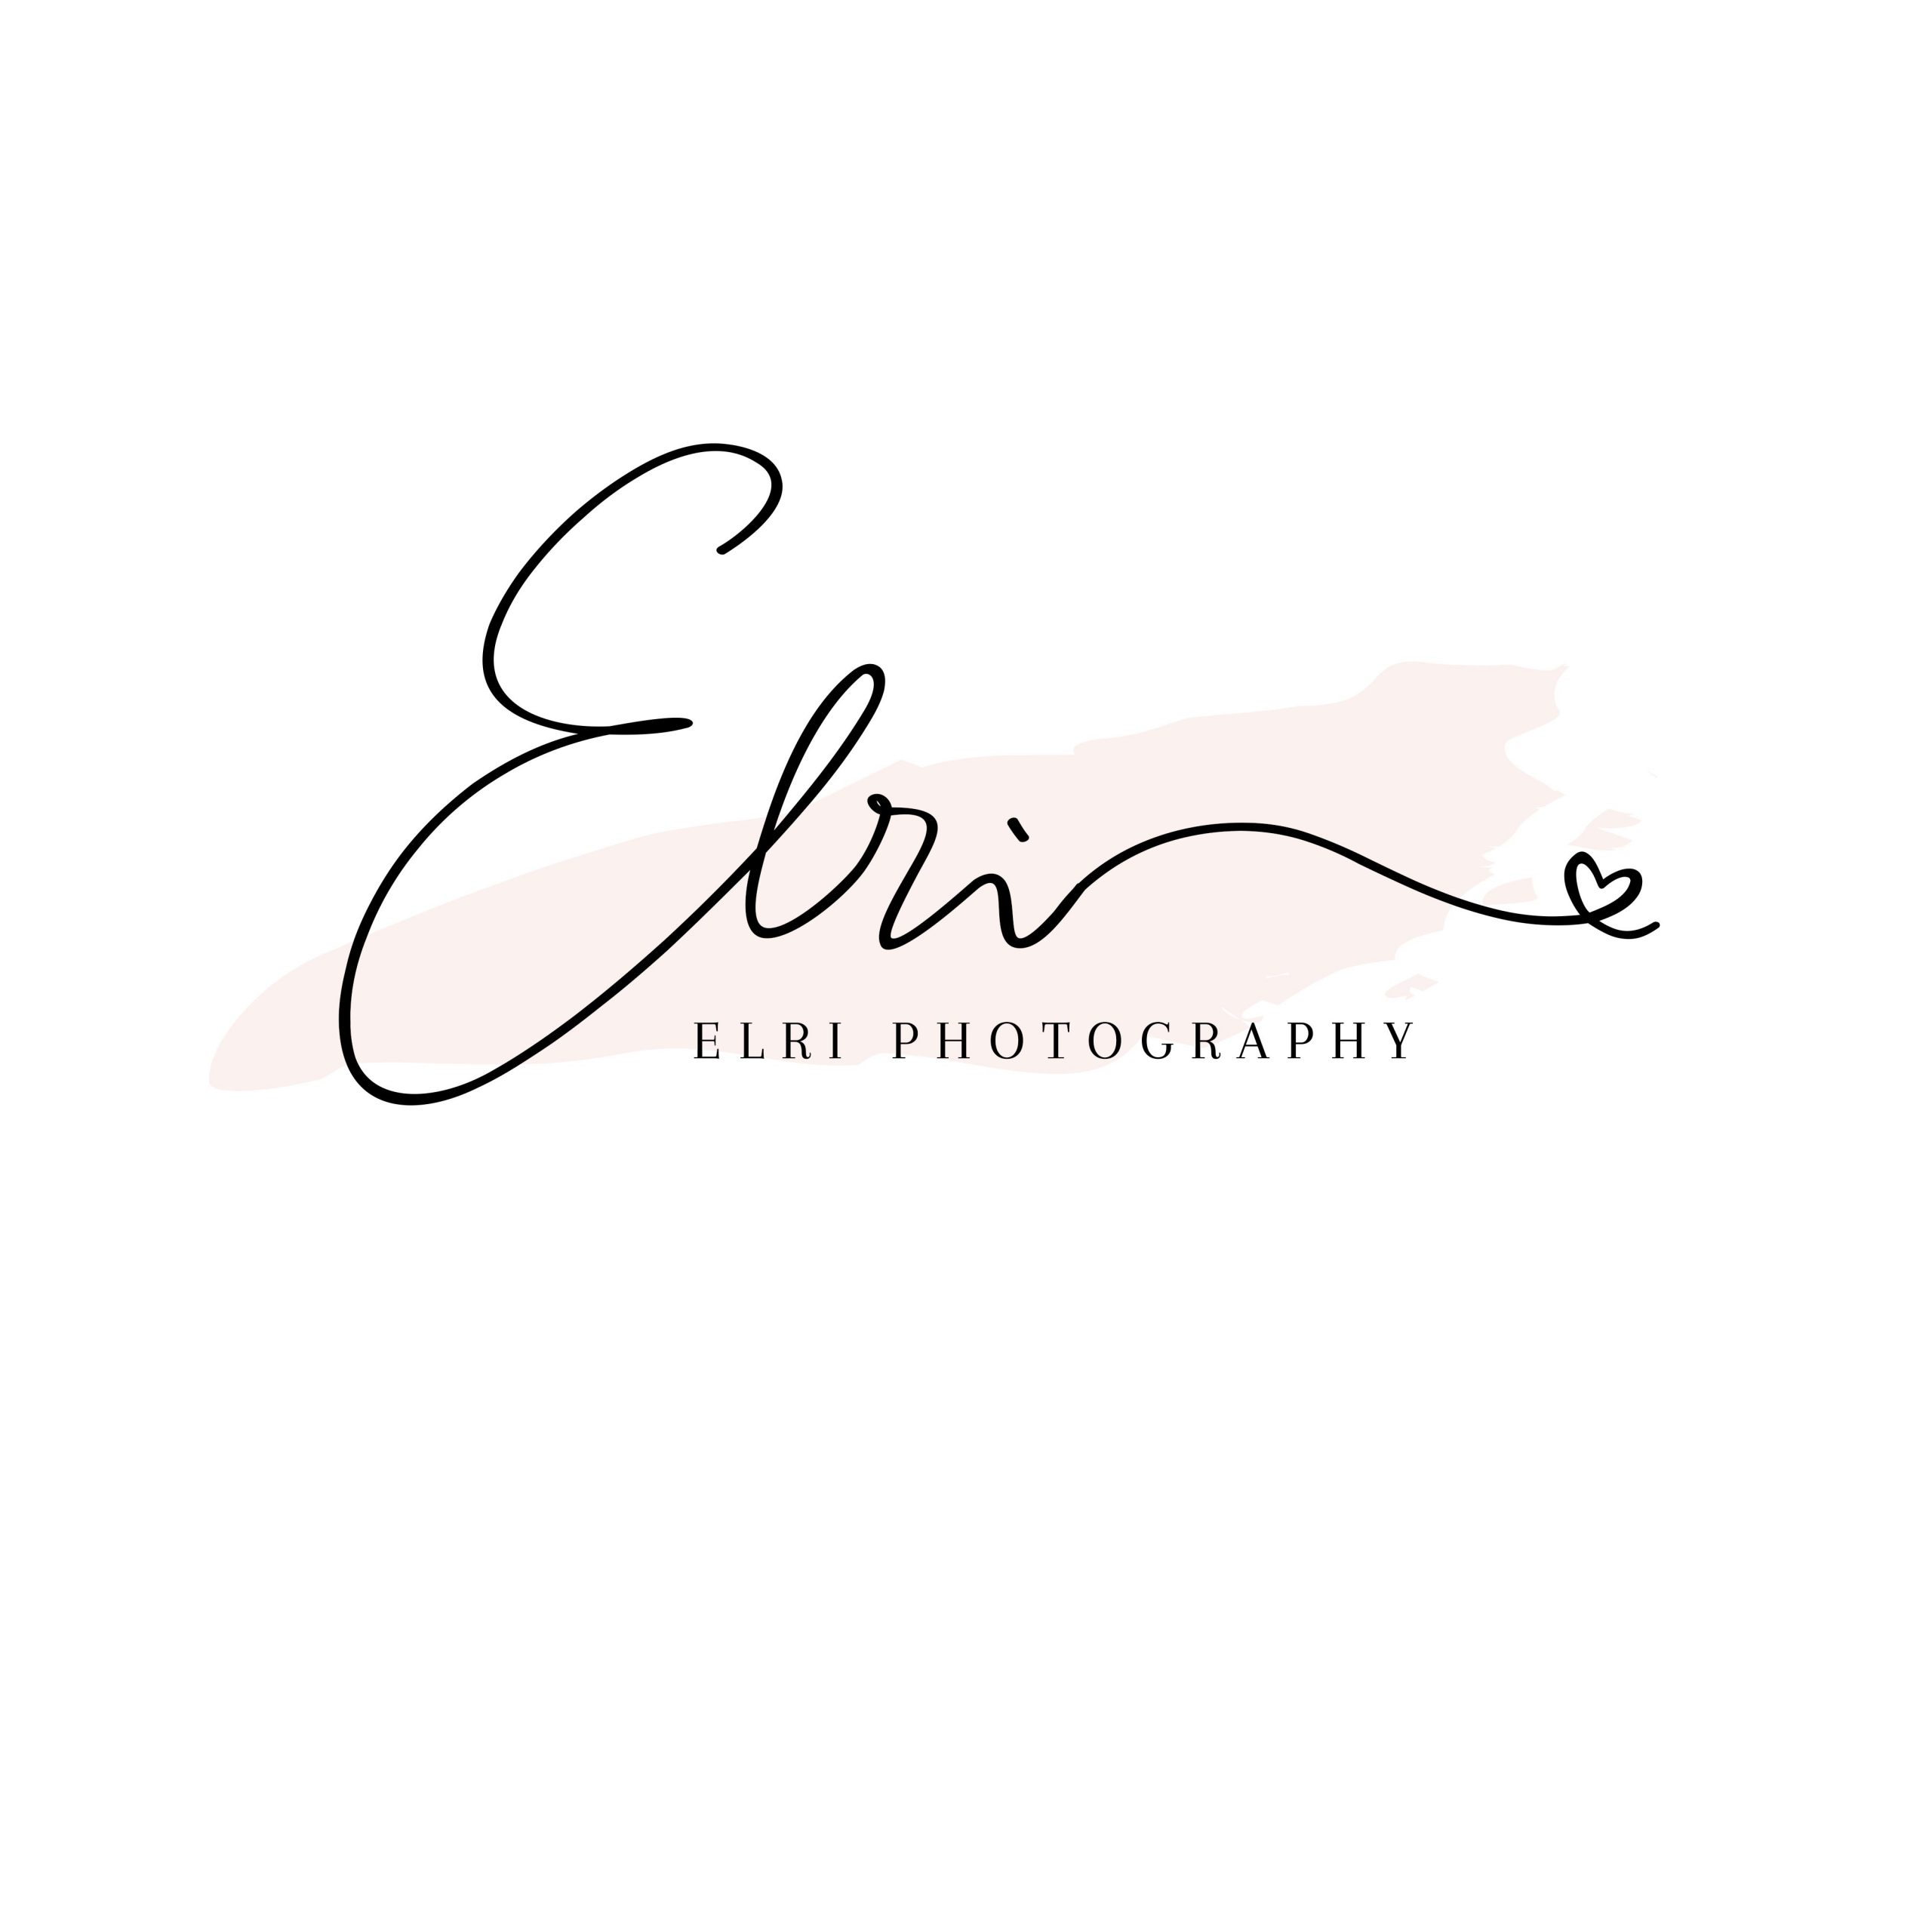 Elri Photography